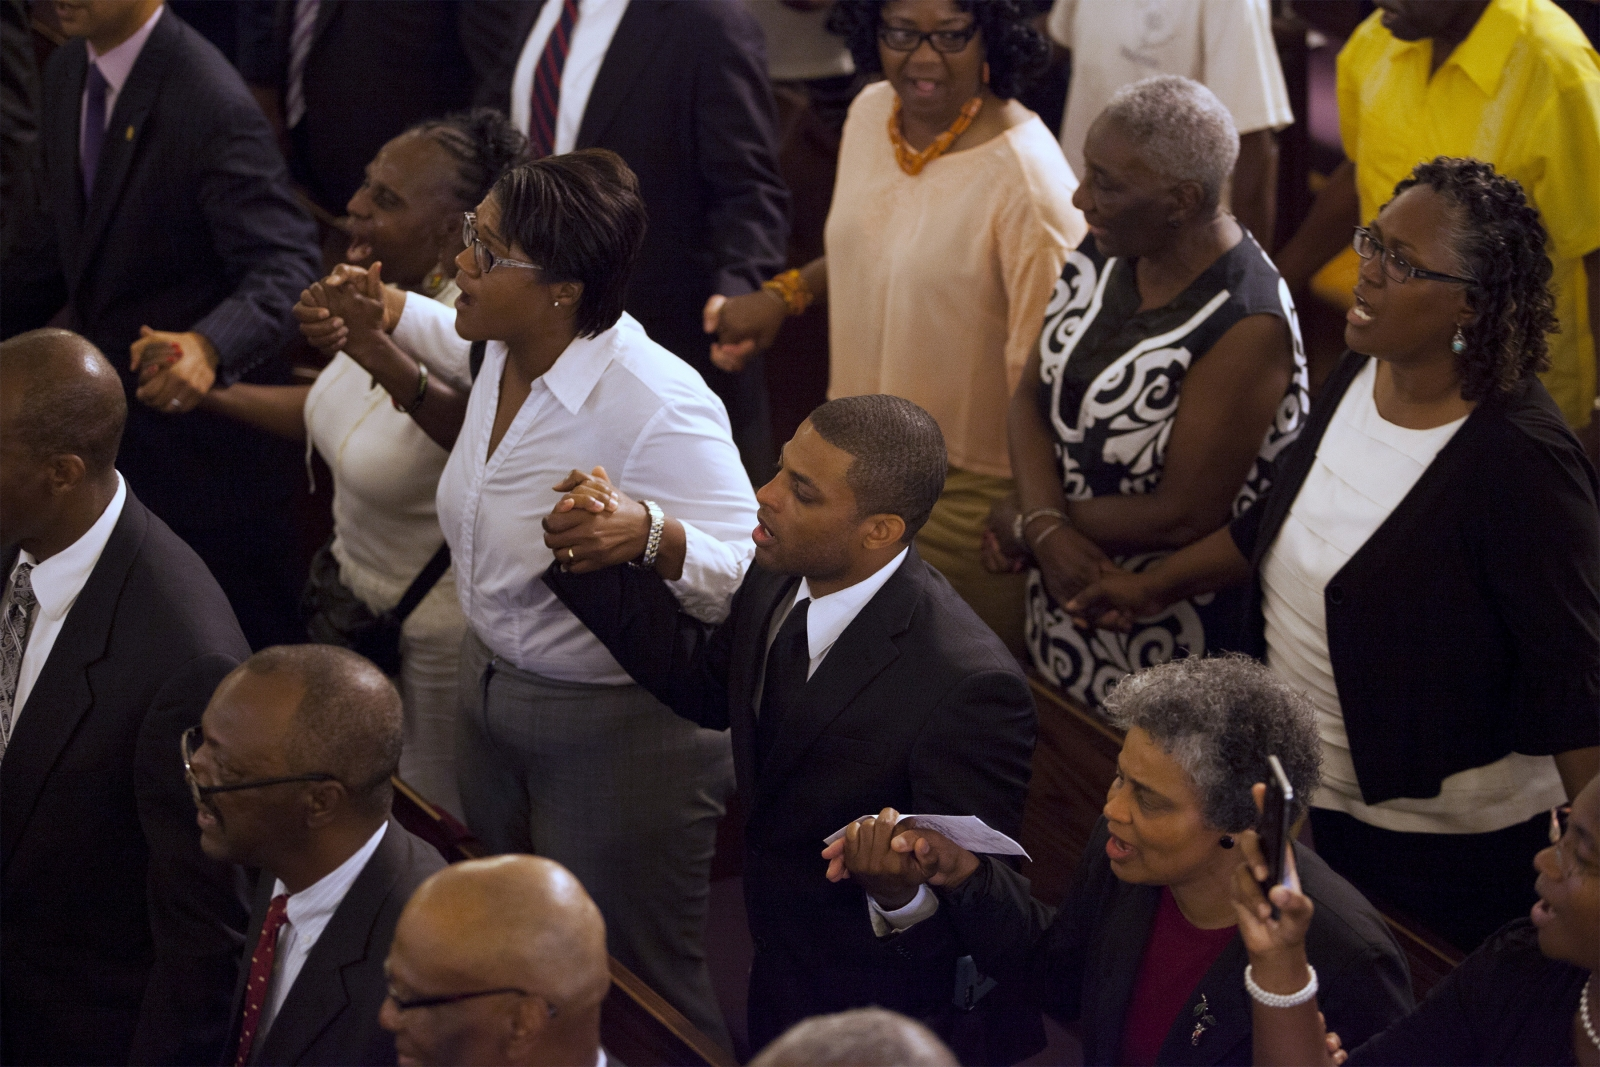 Charleston Shooting The 9 Victims Of The Emanuel Ame